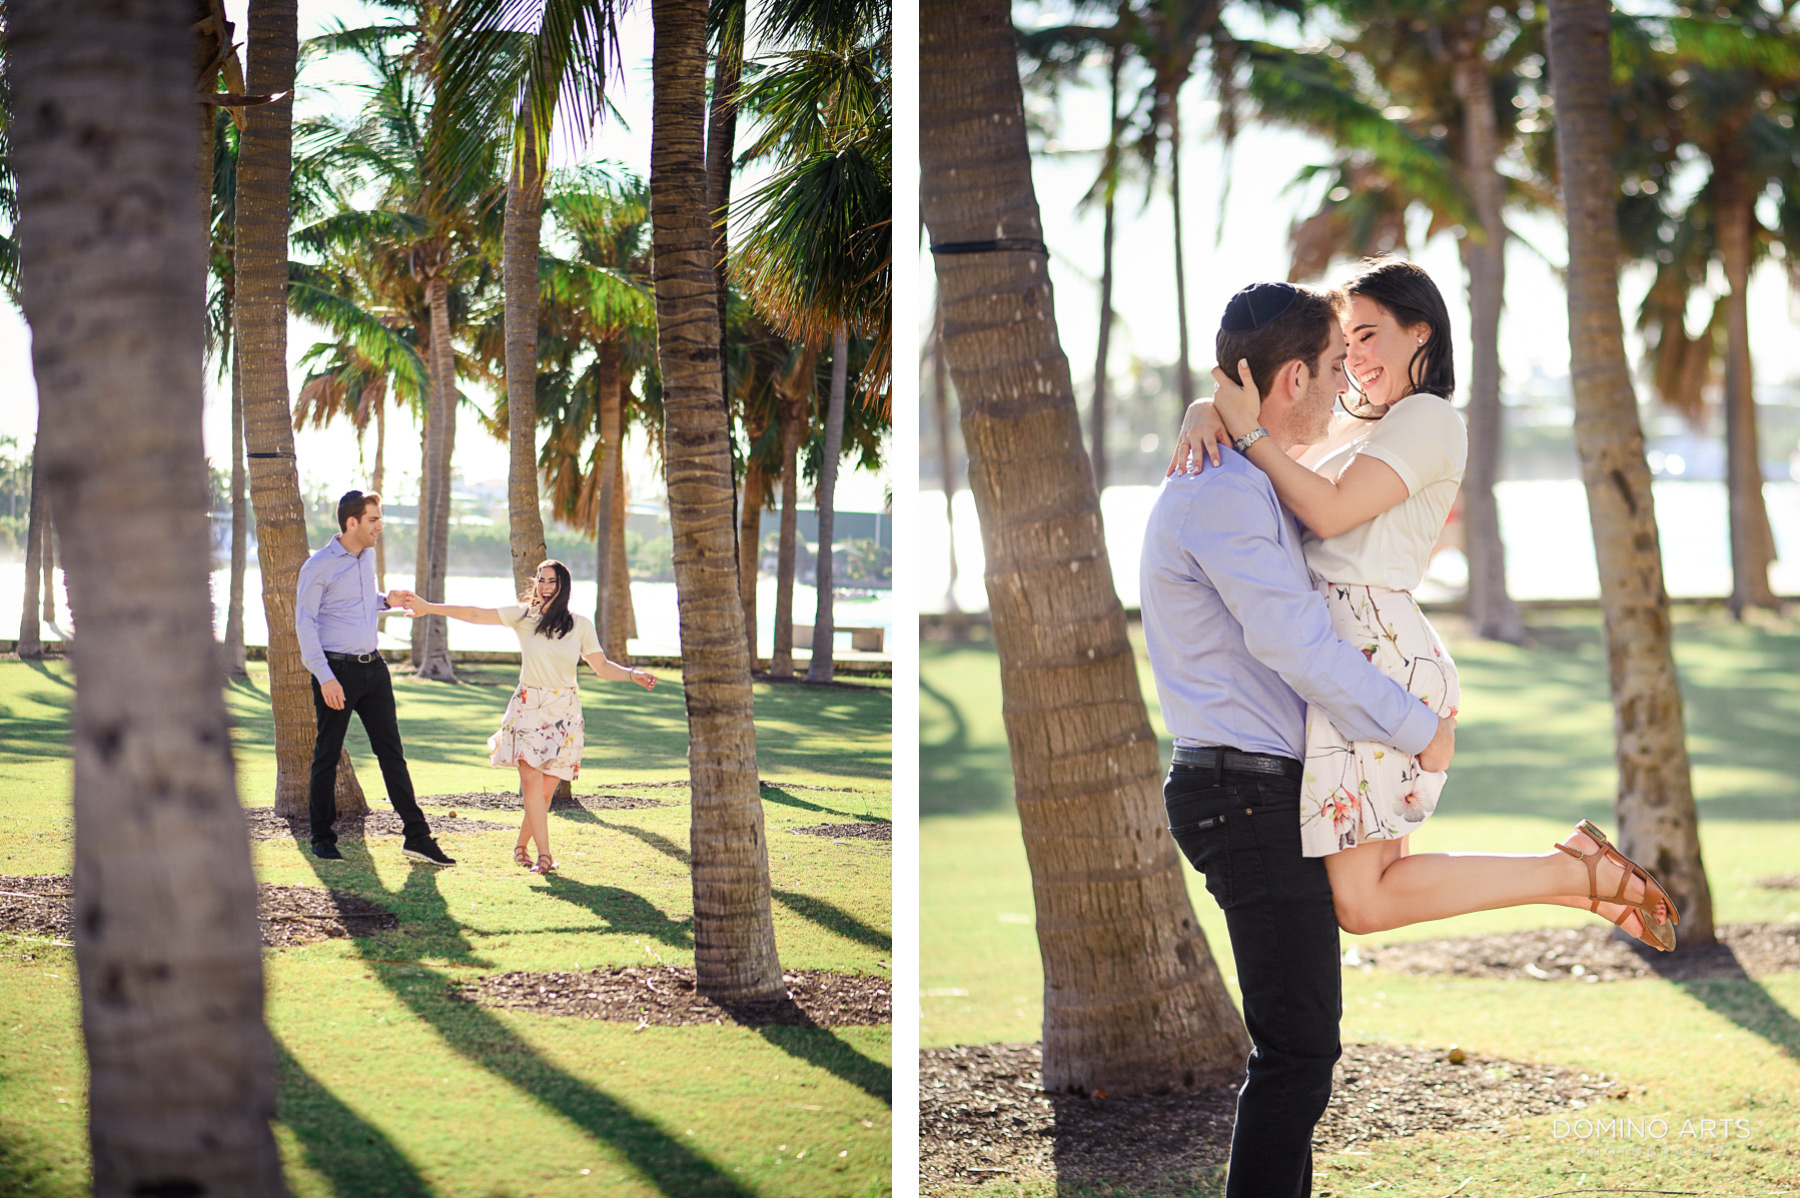 Fun romantic Destination Engagement Photography at South Point Park